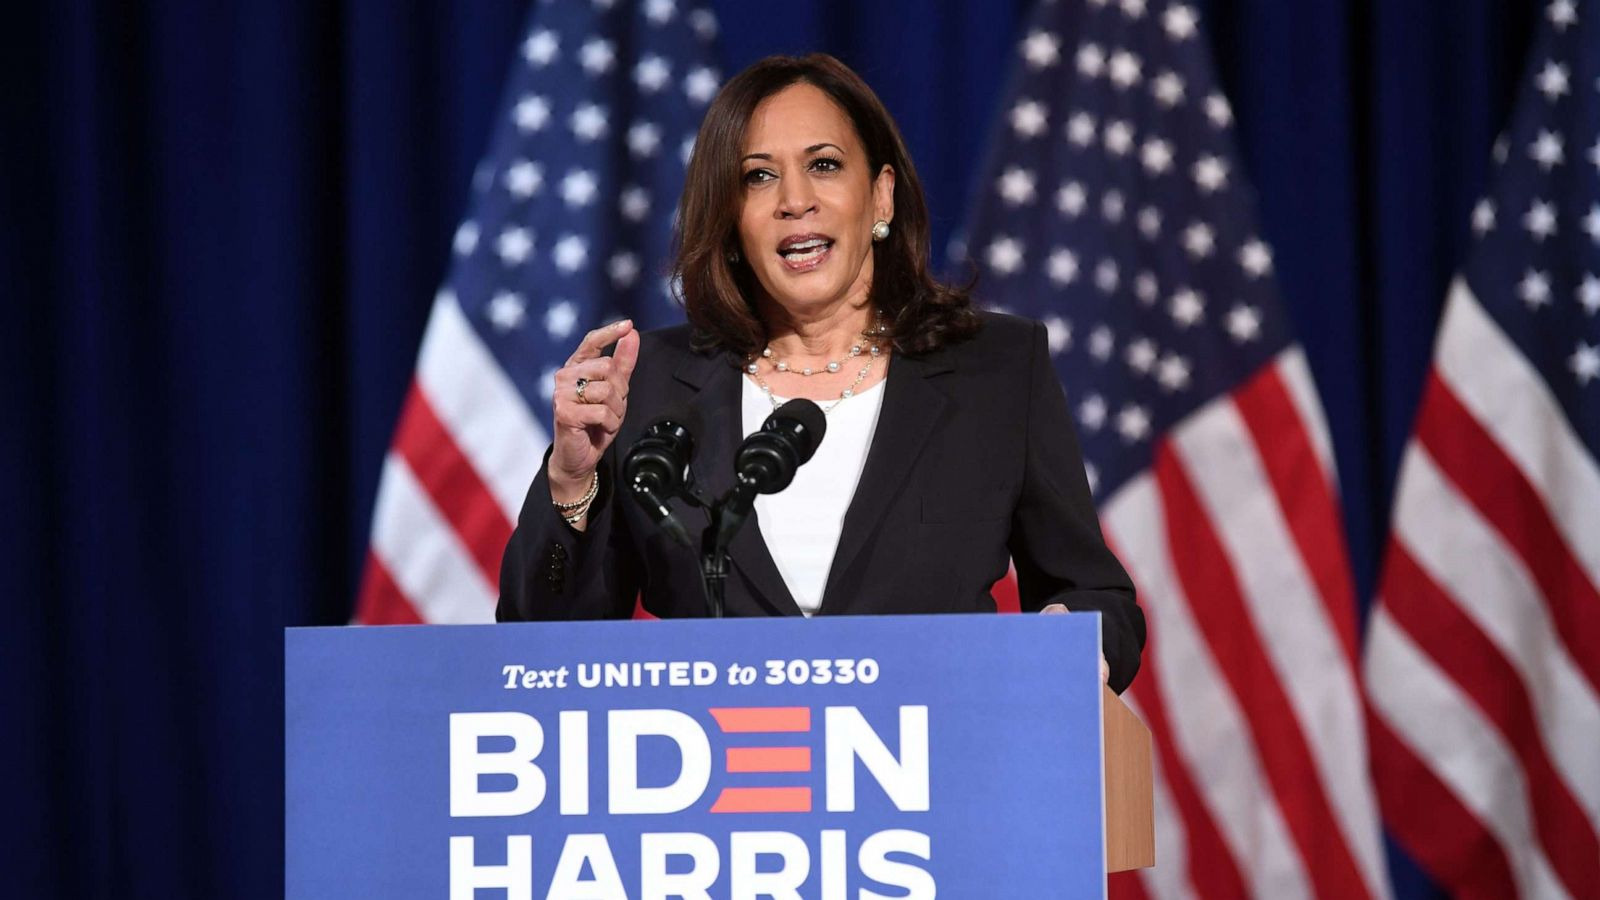 Democrats Of Color Rally Around Kamala Harris Amid Racial Microaggressions Political Attacks Abc News